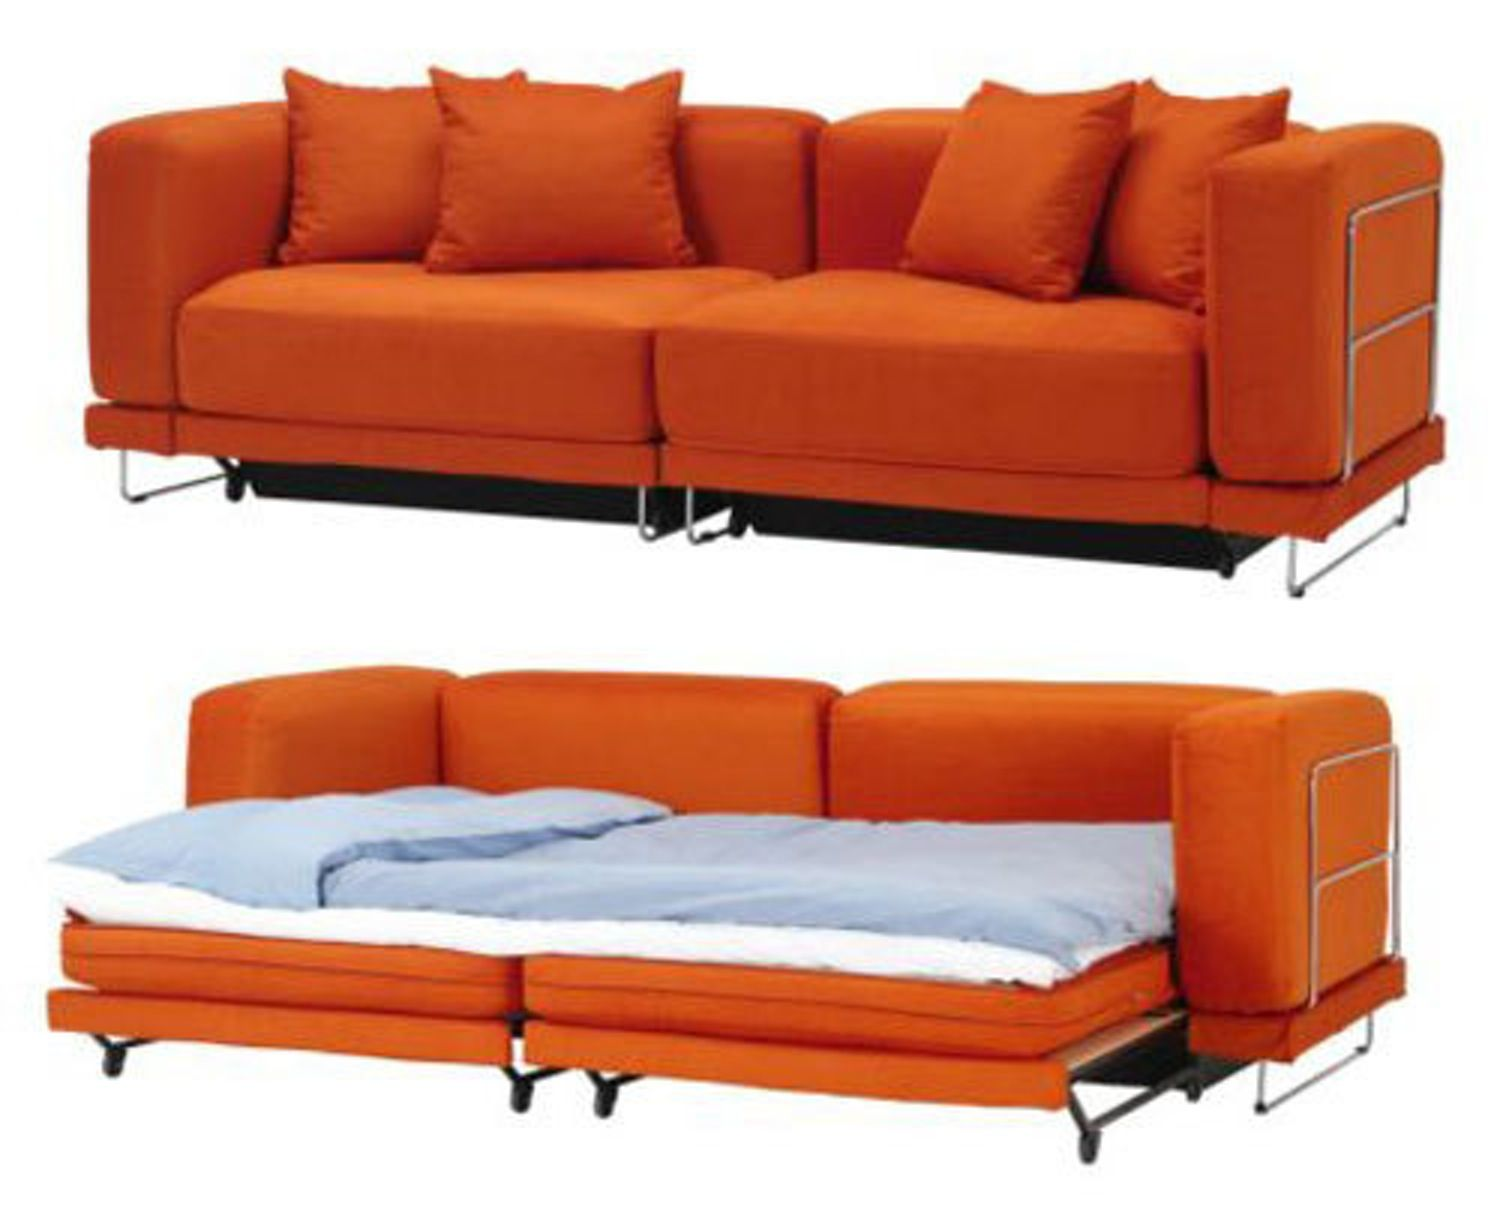 Tylosand Sofa Bed From Ikea Chambre Sup Chambre